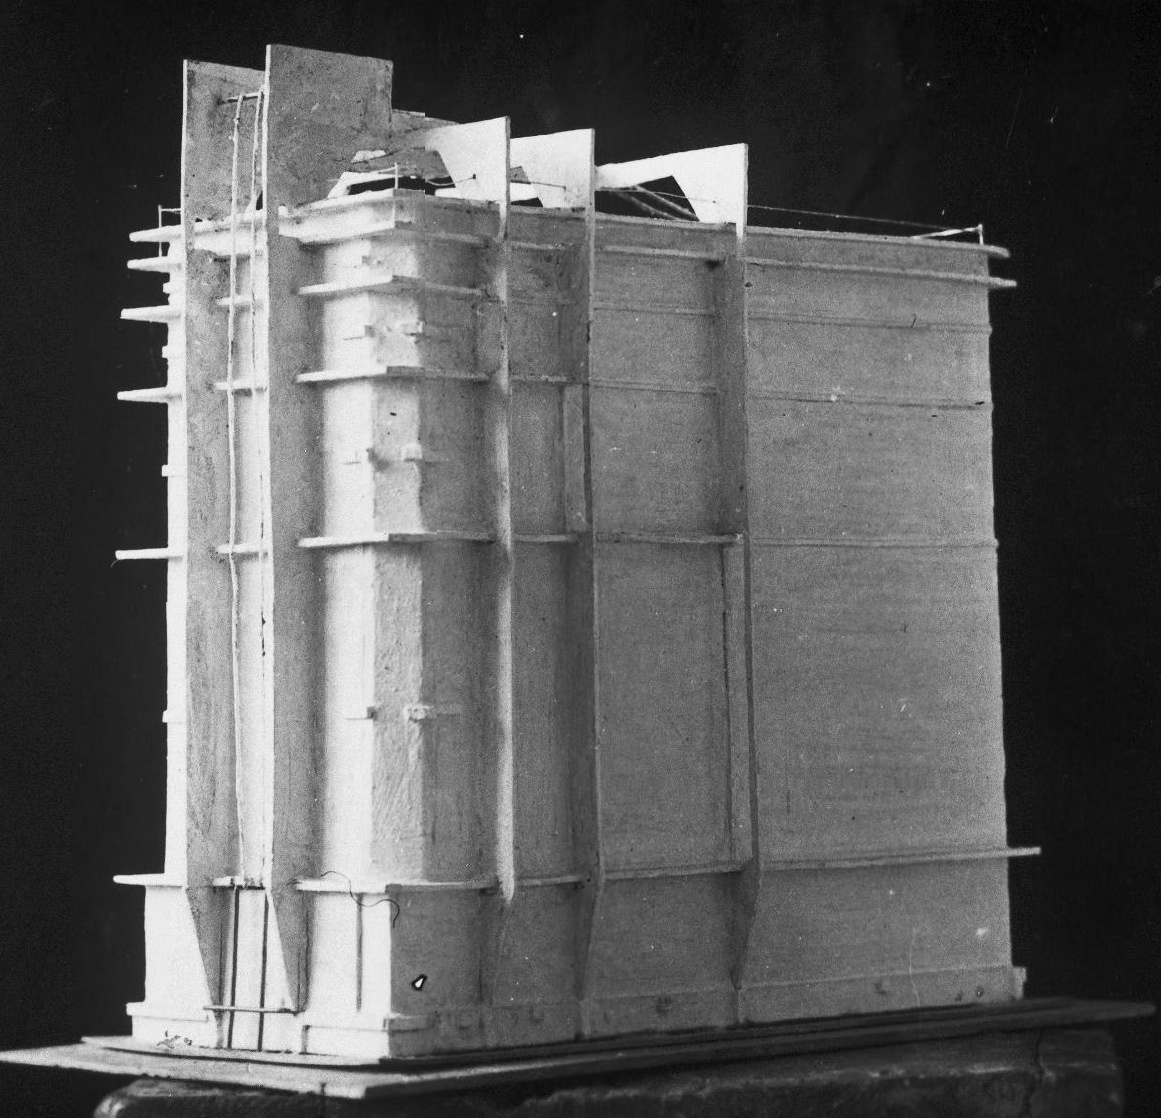 Photograph of a student model on the topic %22Finding the Form of Blunt Massive Volume (Parallelepiped, Cylinder, Complex Configuration)%22 for the %22Space%22 course at the Vkhutemas (Higher State Artistic Technical Studios), Moscow between 1920-1926yt